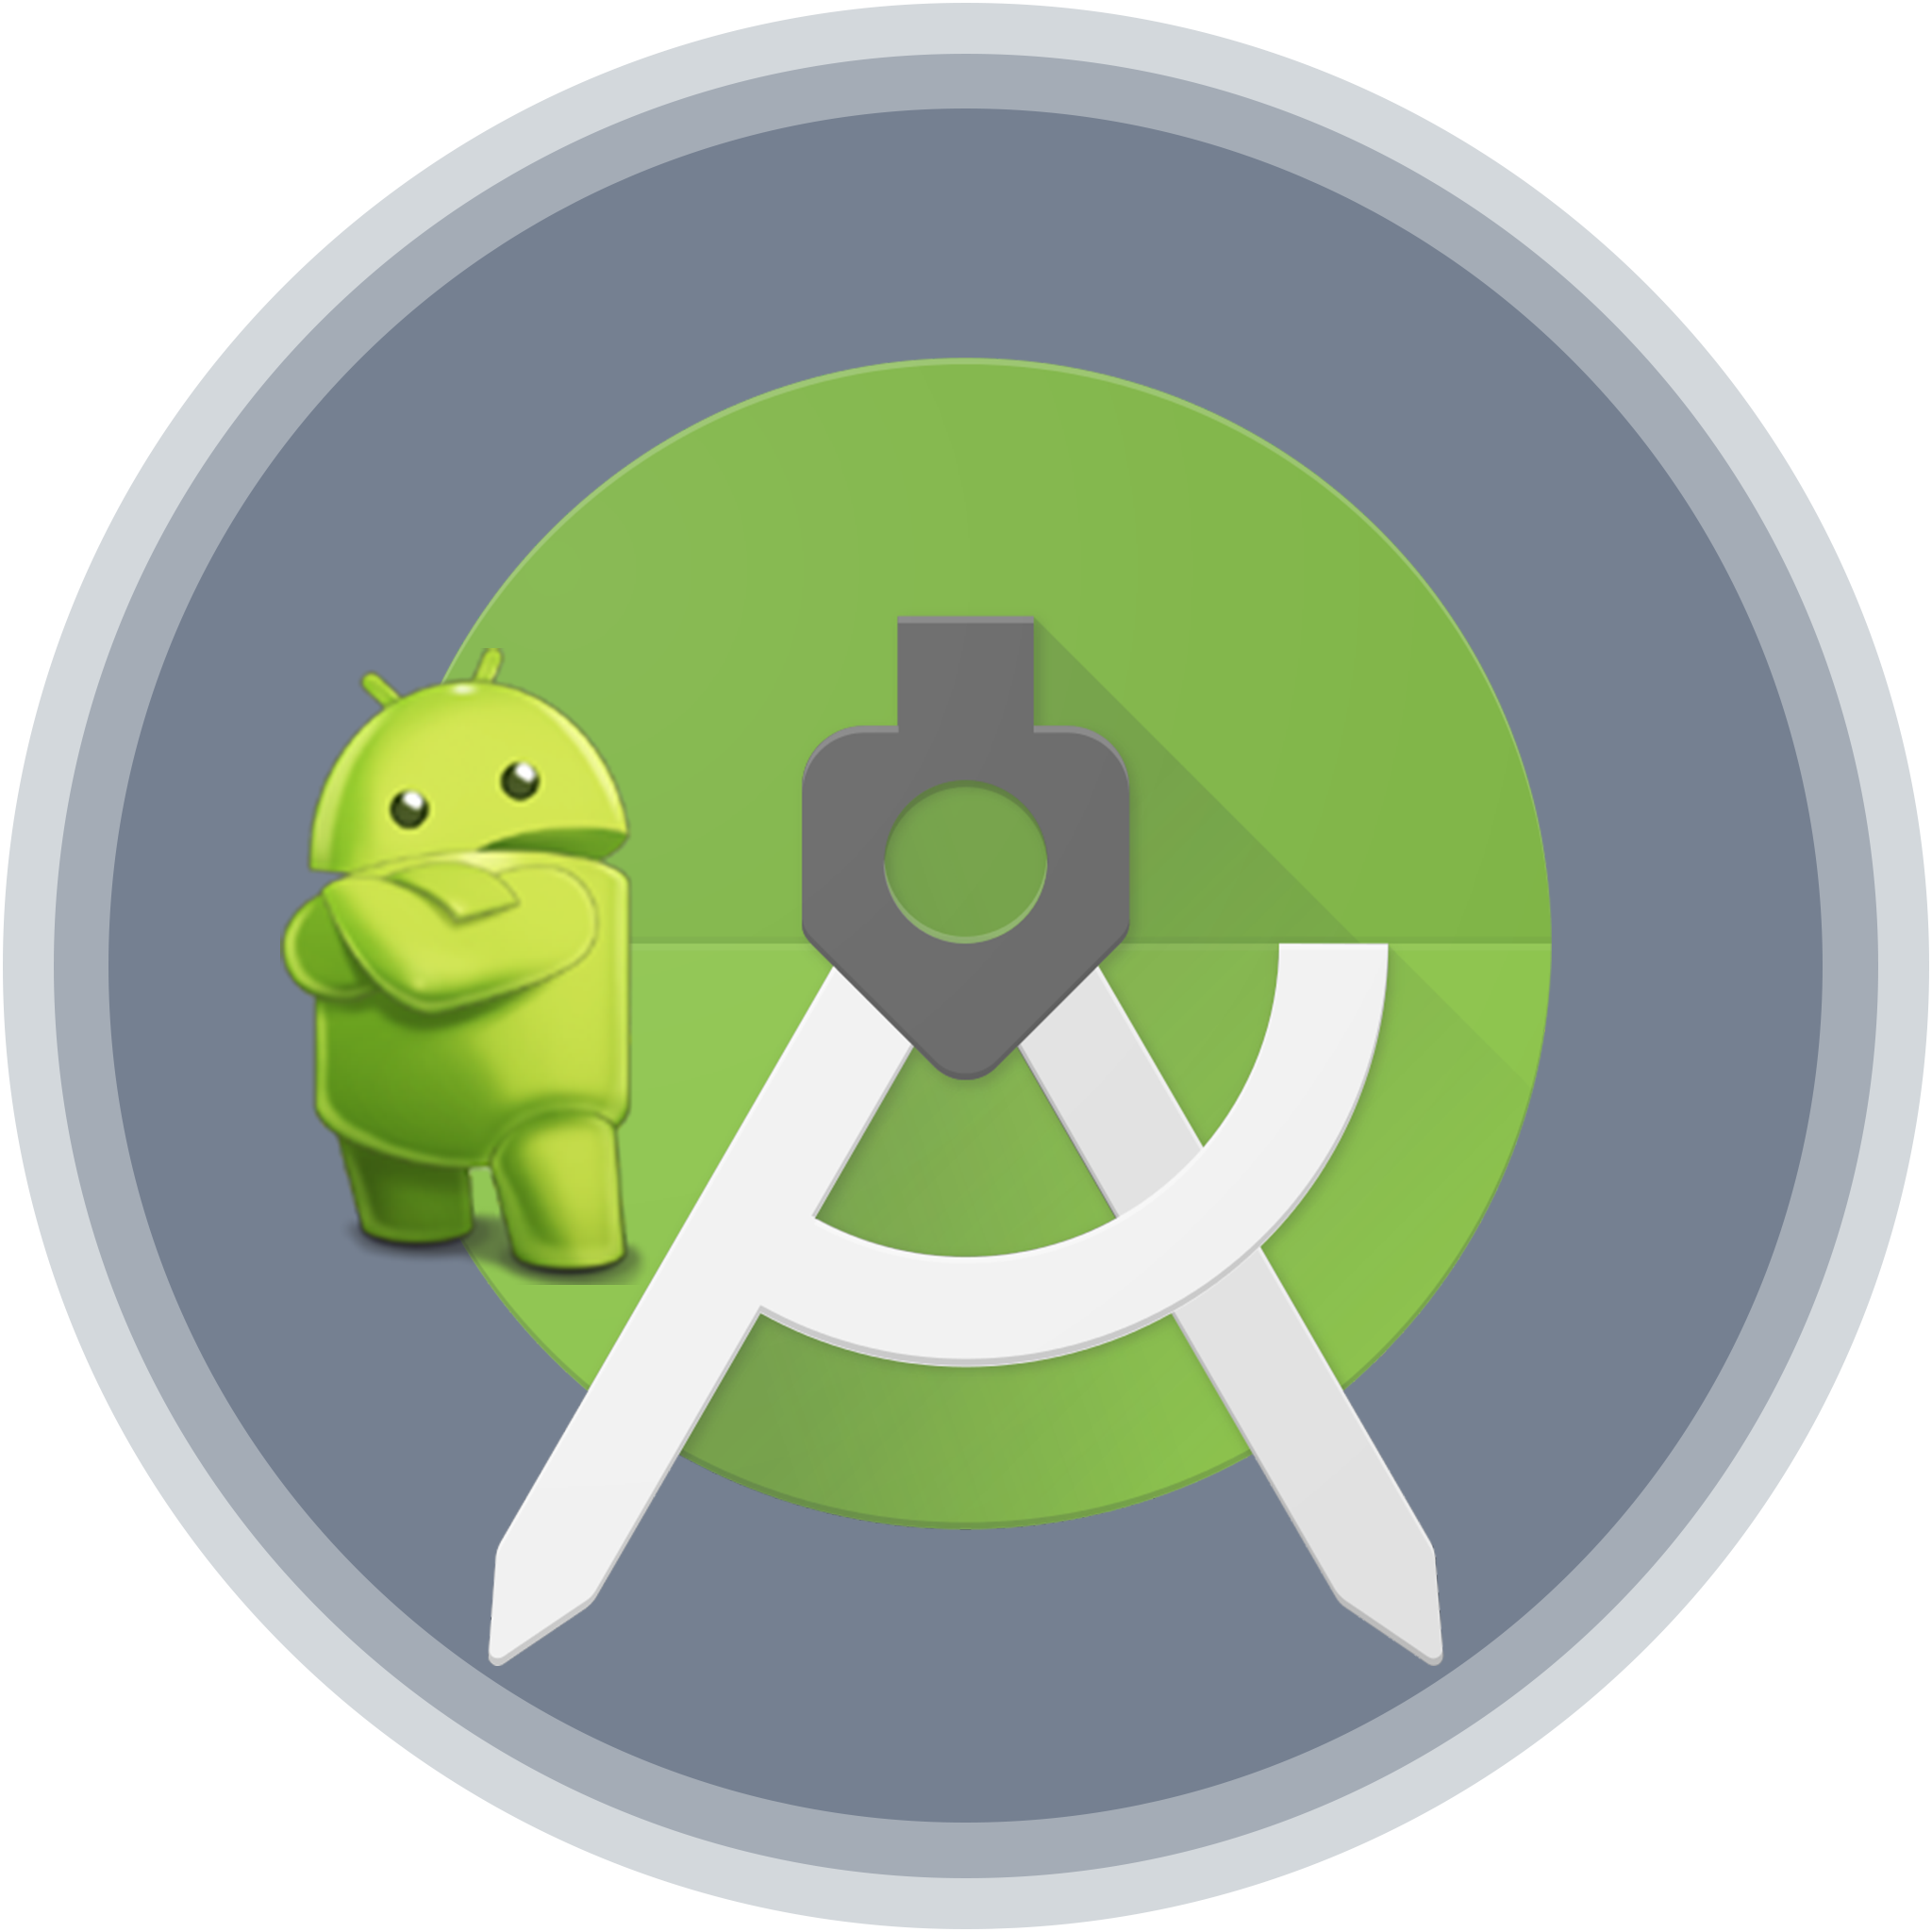 Android Studio Logo Transparent Png Clipart Free Download Ywd